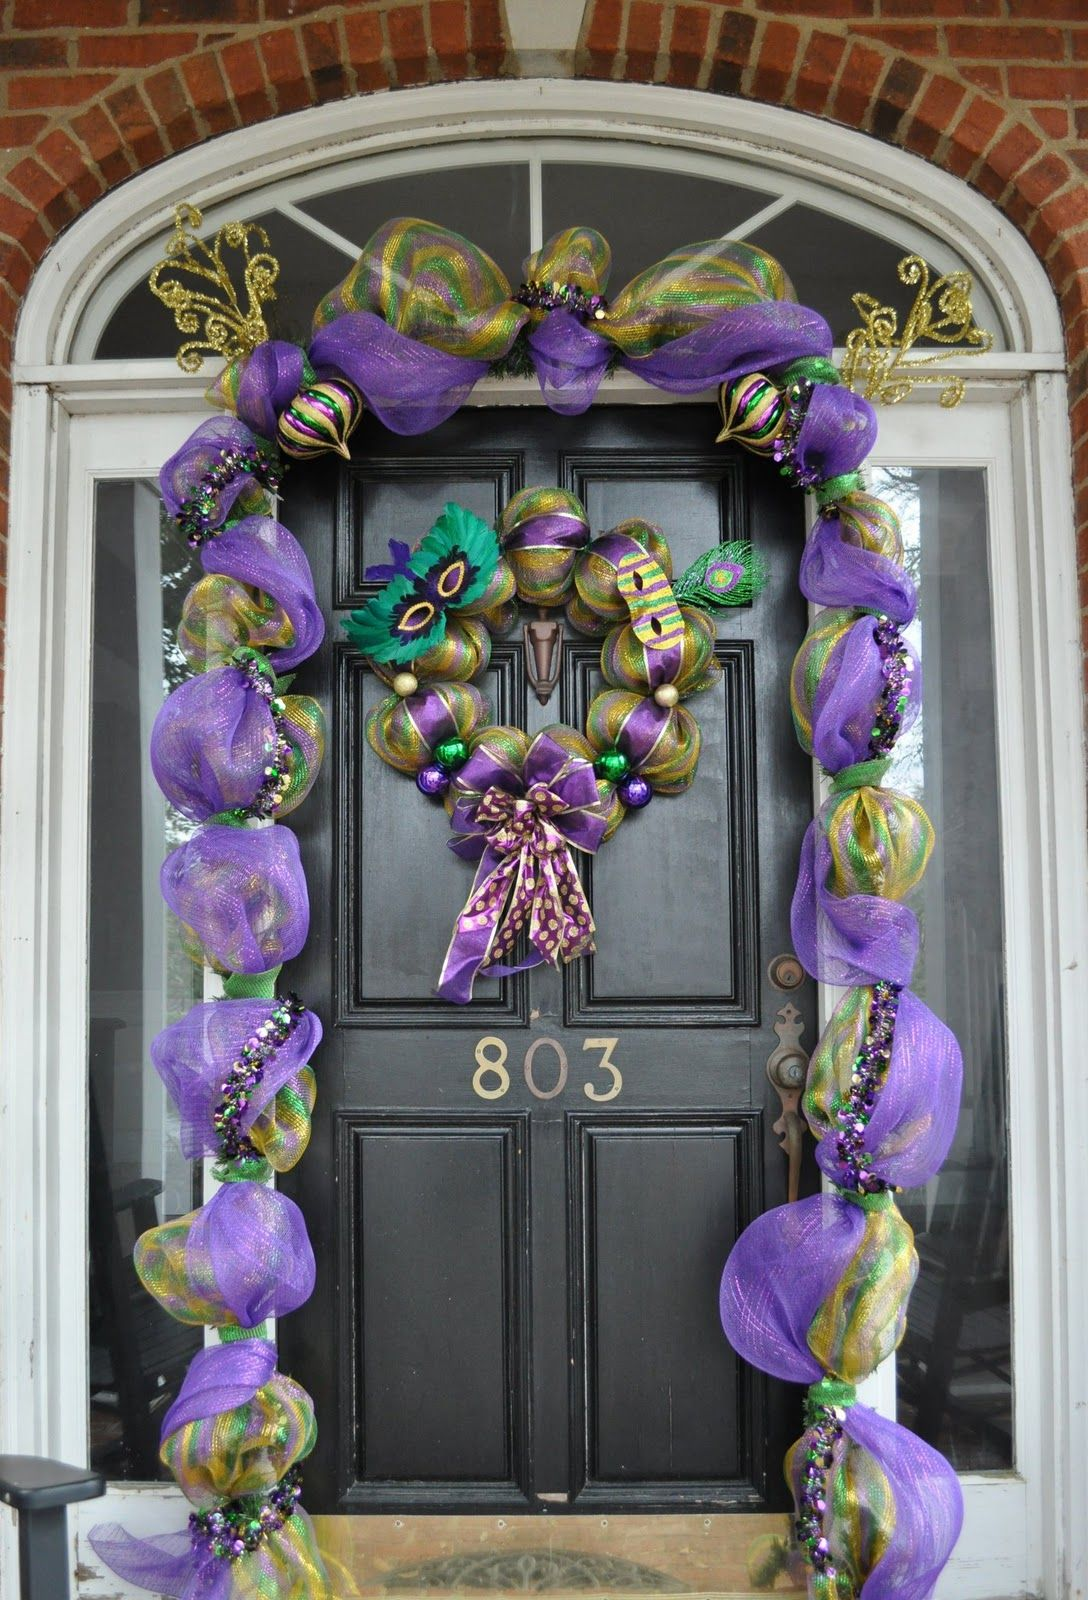 mardi gras door decoration garland and wreath from deco mesh les bon temps rouler - Deco Mesh Halloween Garland